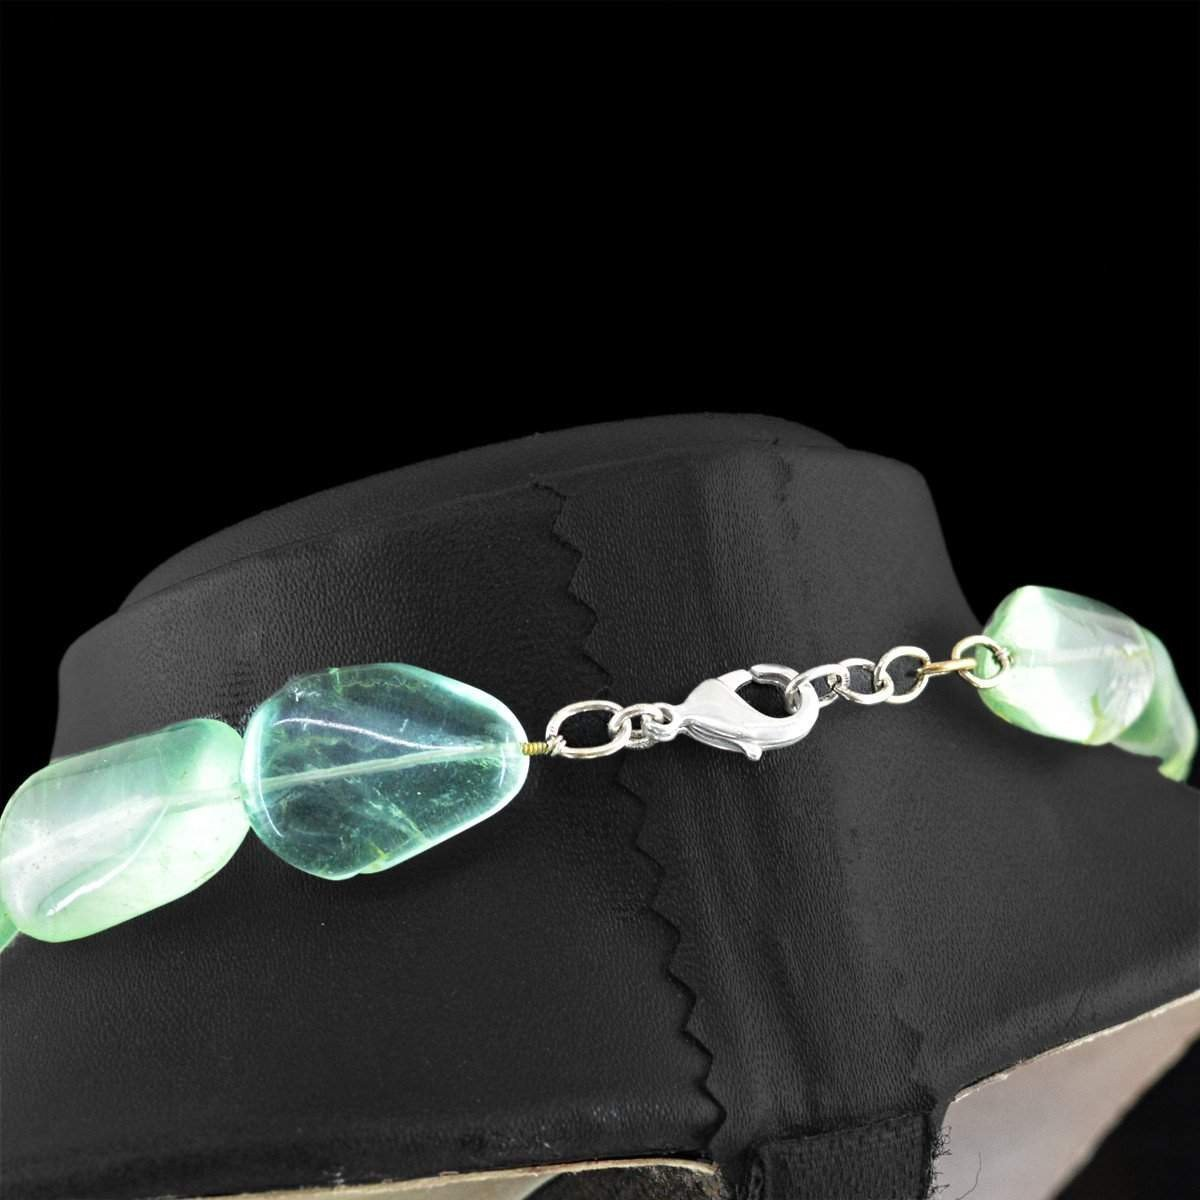 gemsmore:Big Size Green Fluorite Necklace Natural Untreated Beads